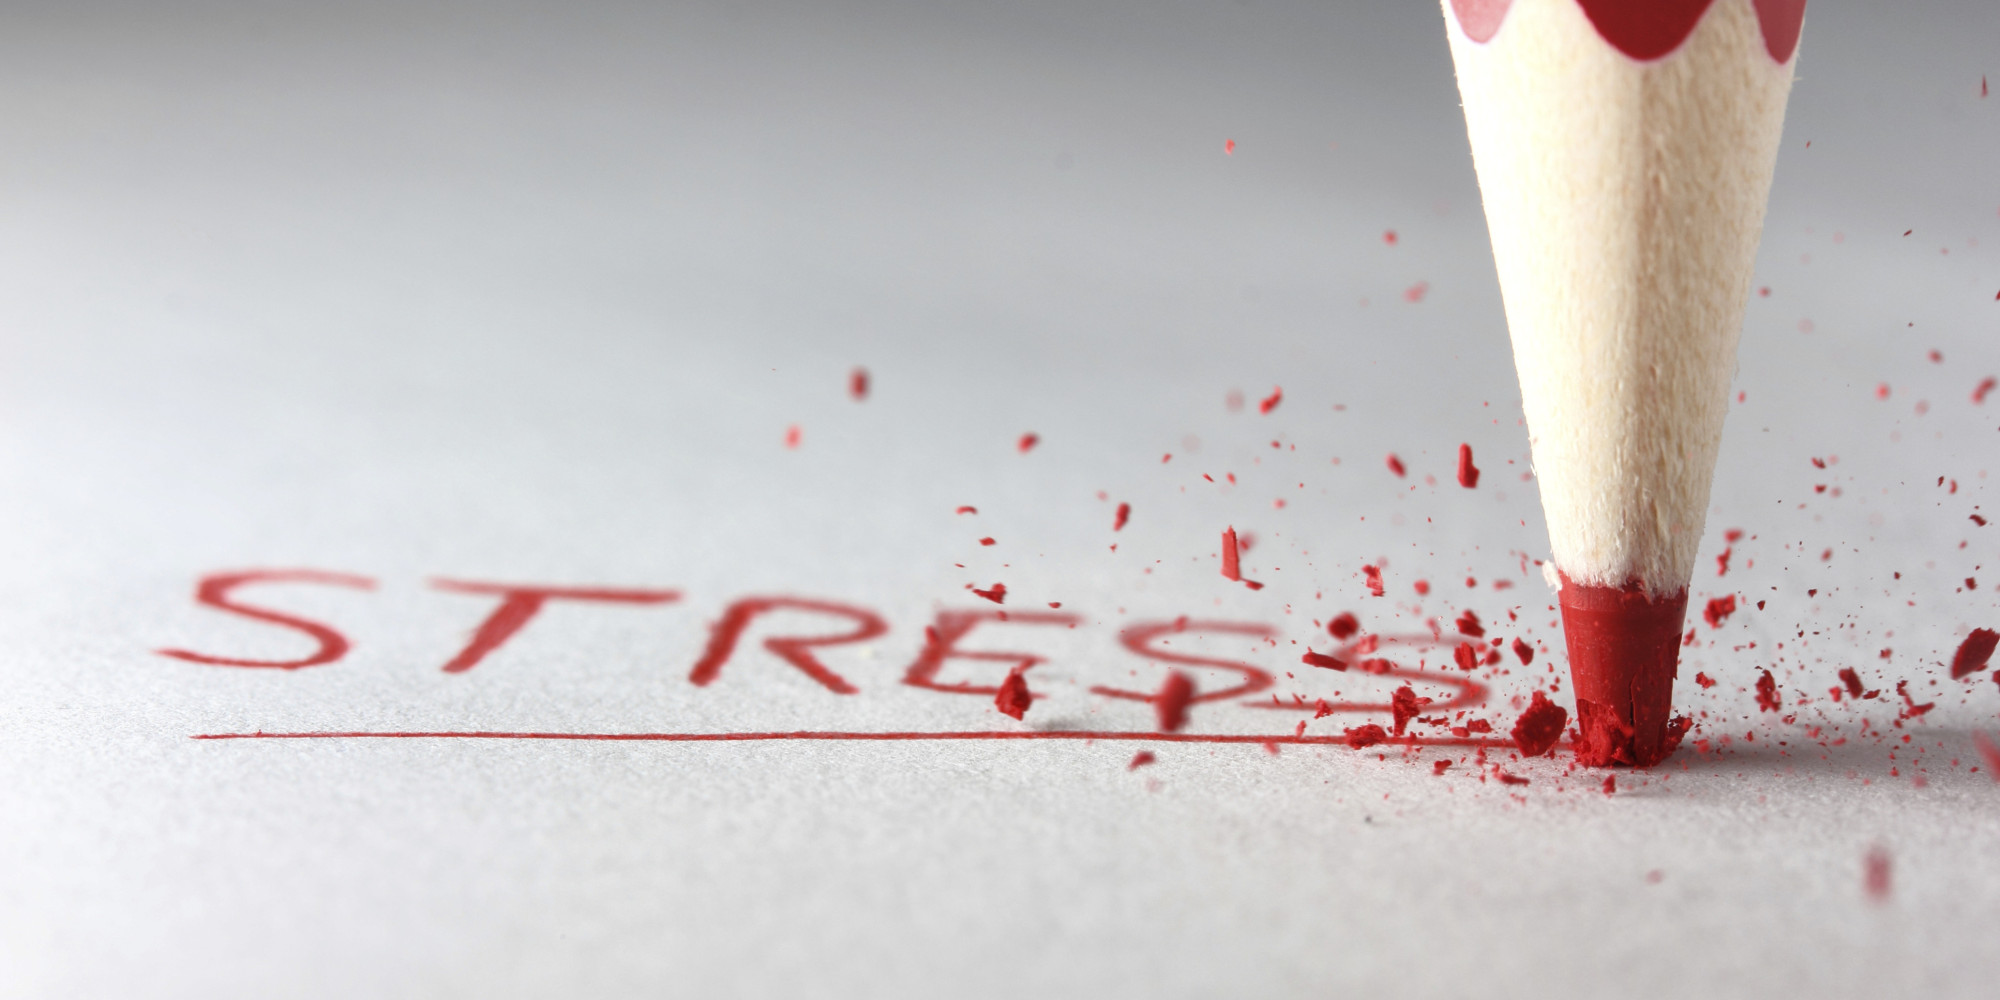 7 ways stress ruins your life and 5 steps that start to turn it 7 ways stress ruins your life and 5 steps that start to turn it around the huffington post